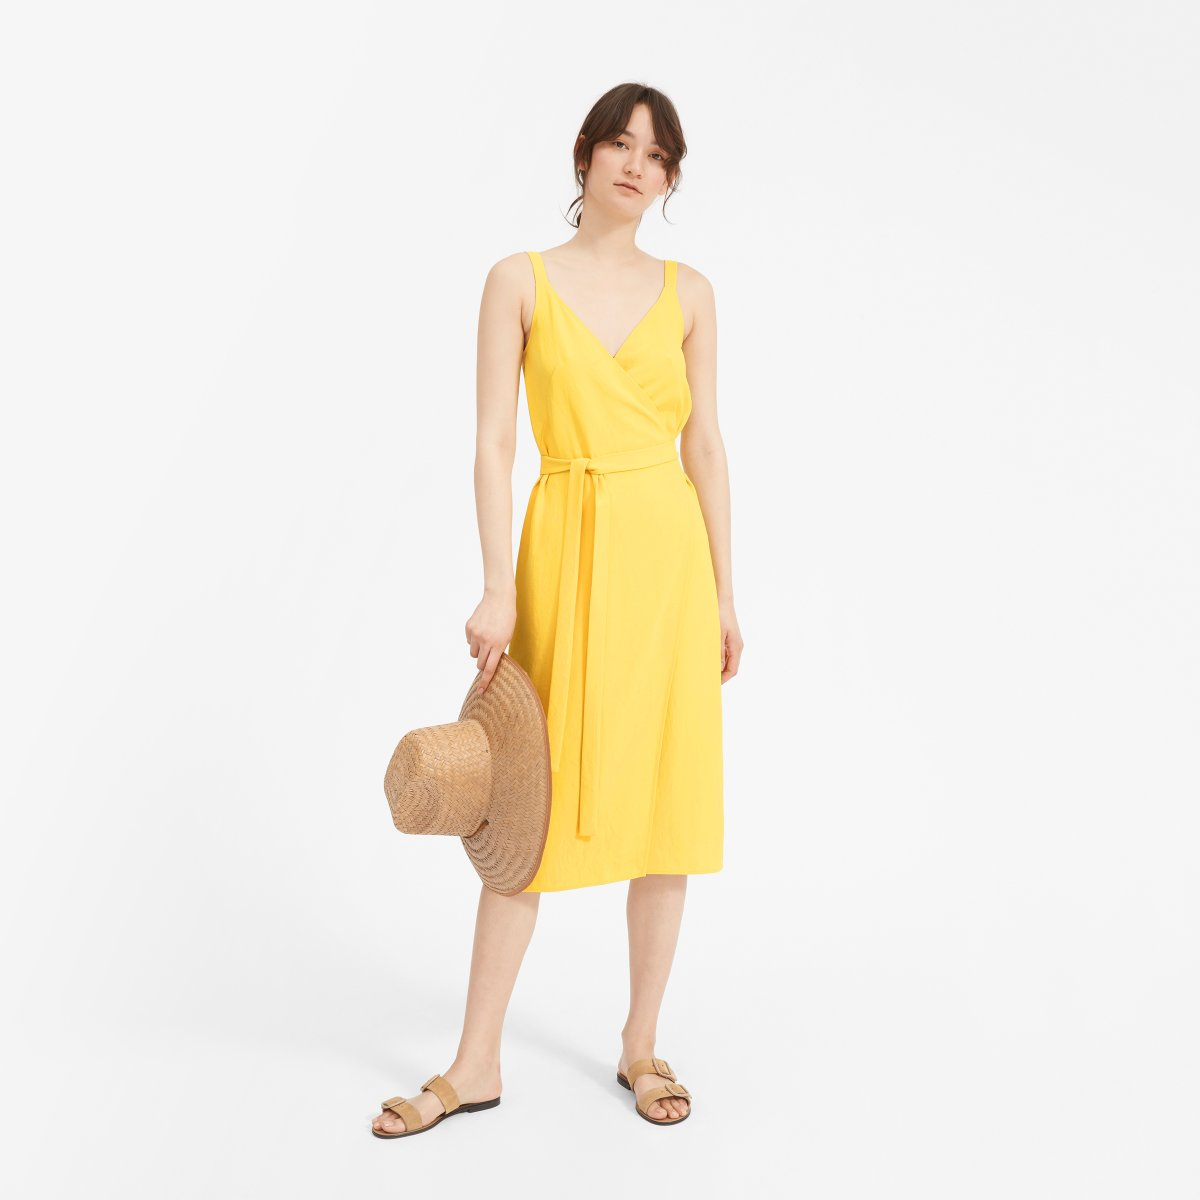 6efe40957a8c Summer Packing List  An Ethical Guide